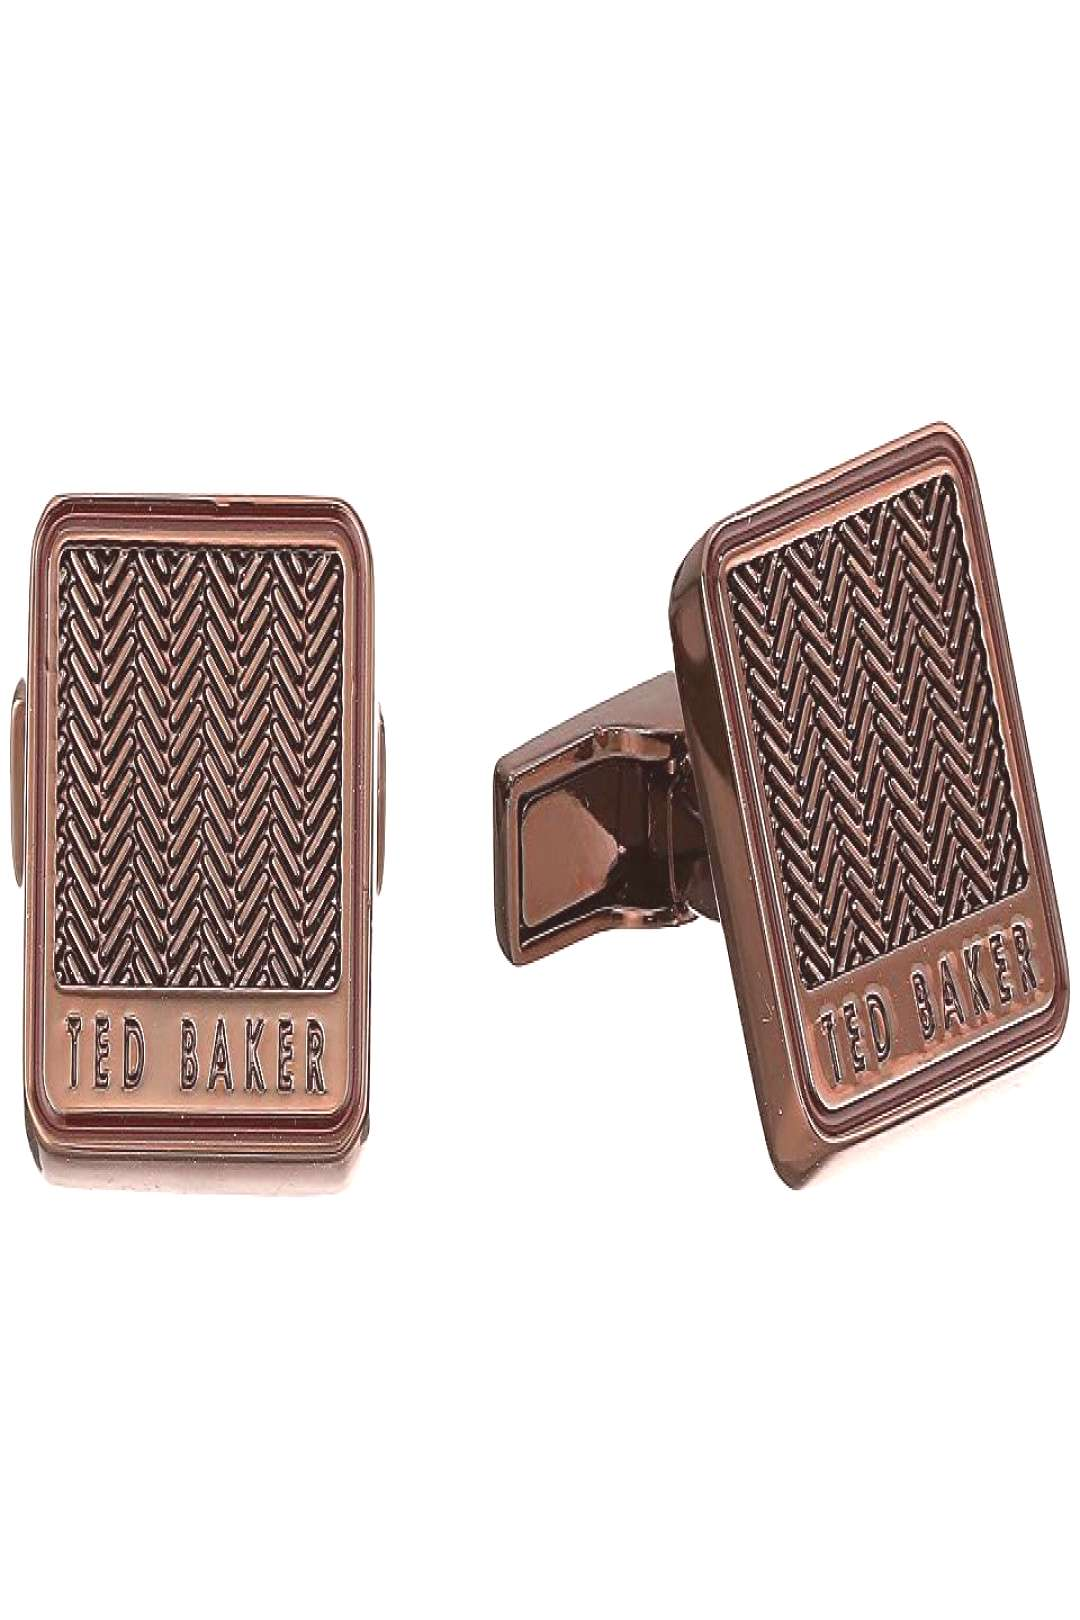 Ted Baker Braidy (Chocolate) Cuff Links. Keep your look fresh and clean with the Ted Baker Braidy c